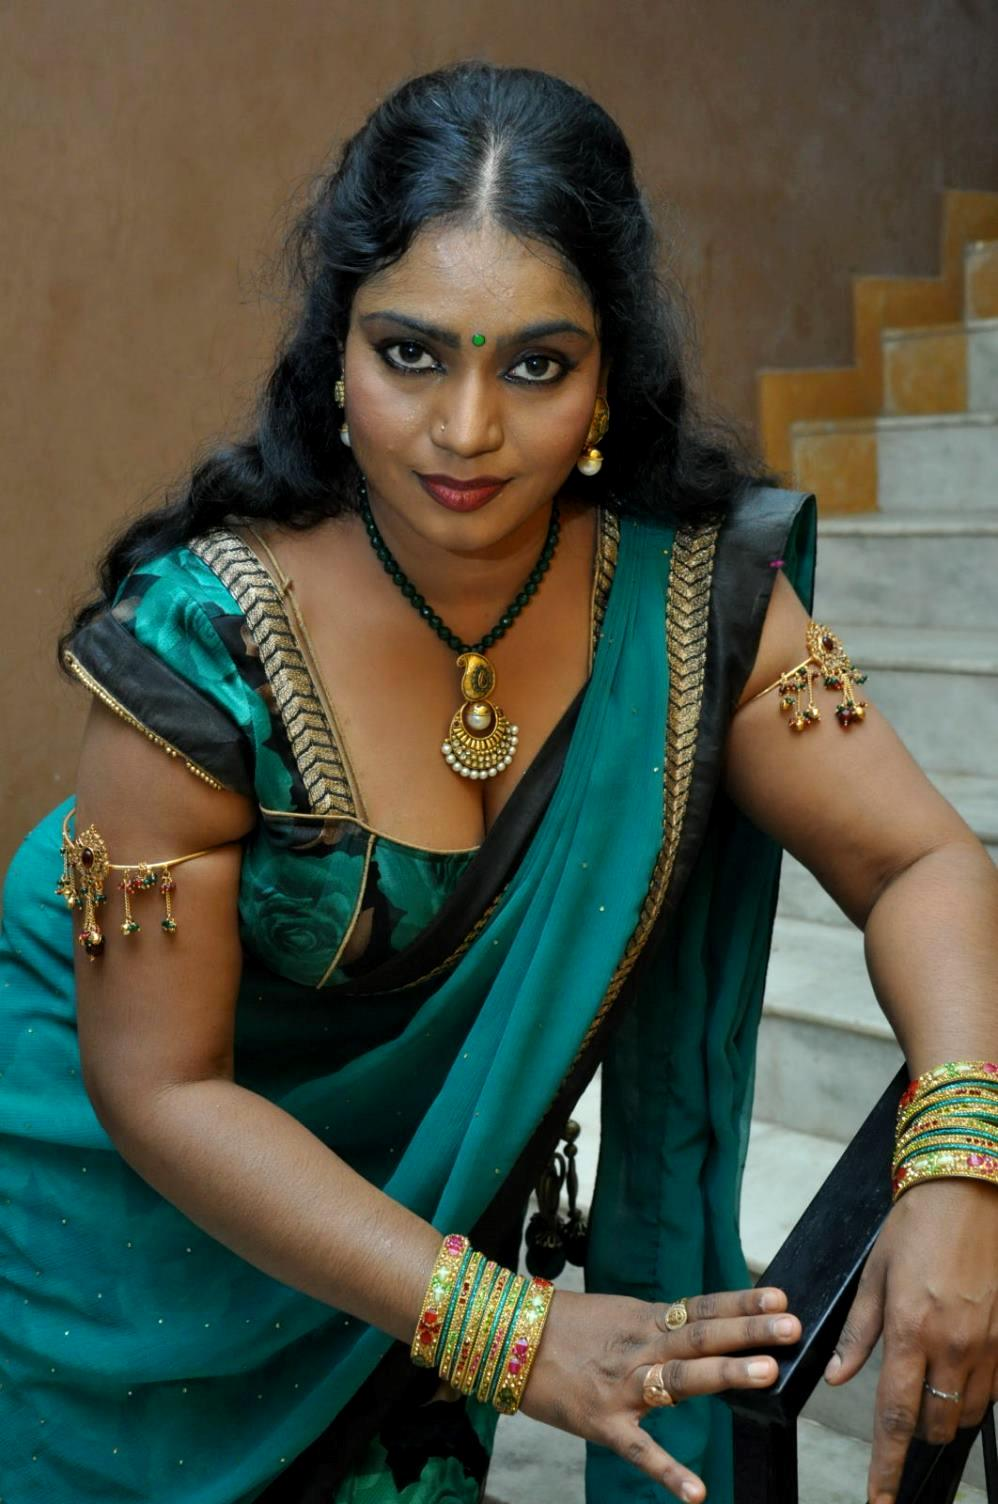 Telugu Supporting Actress Jayavani Hot Photos Stills Gallery Jayavani Hot In Saree Mallu Masala Actress Jayavani Hot Pictures